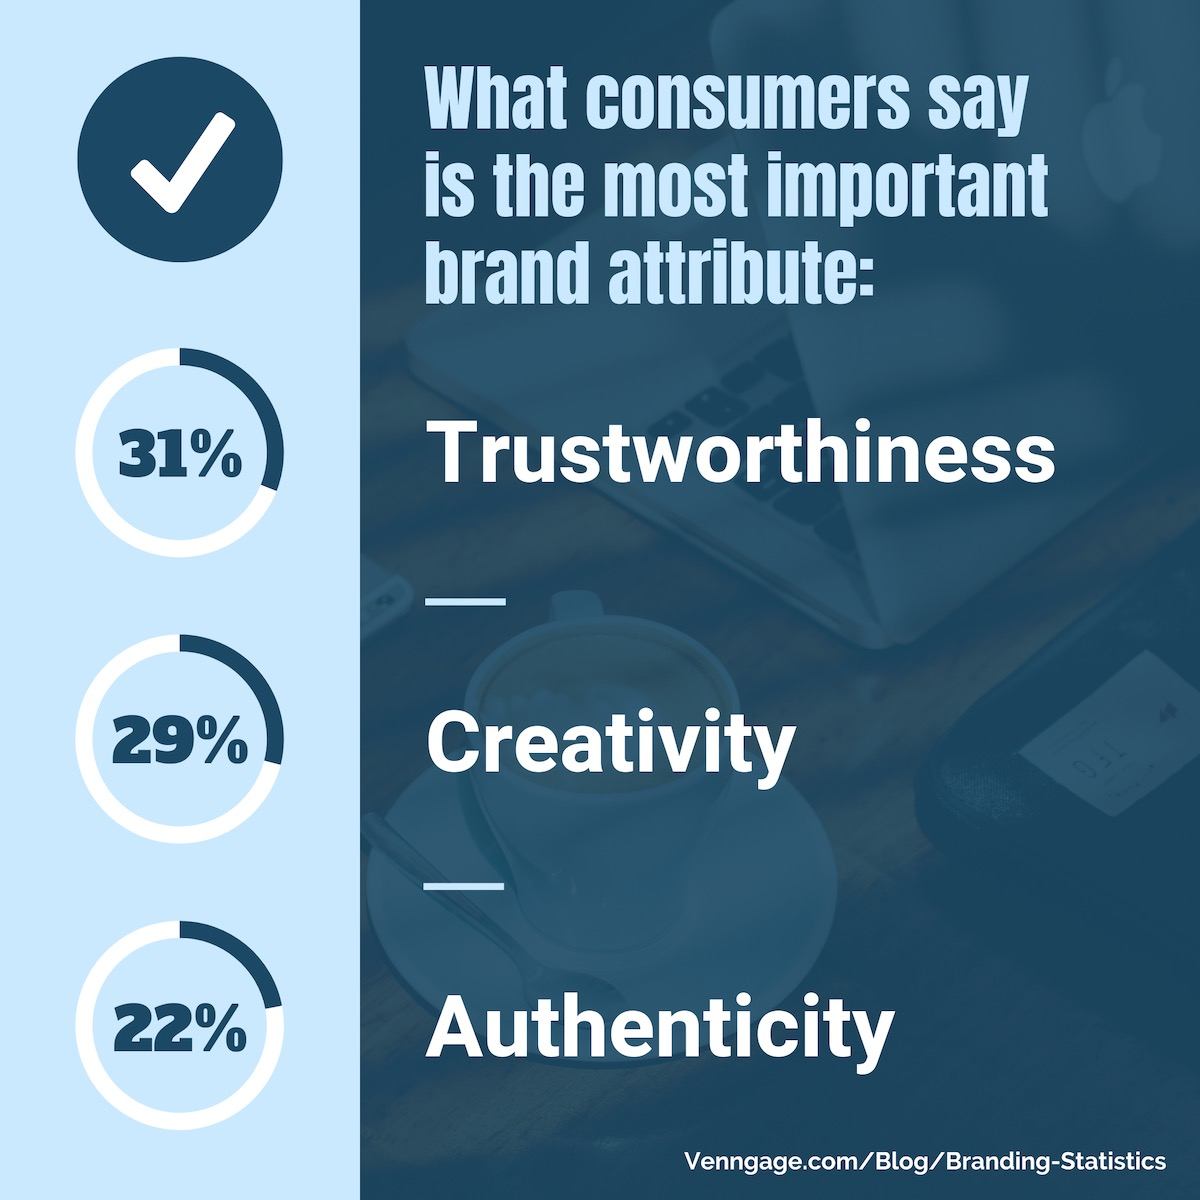 Trustworthiness, creativity, and authenticity are the most important brand attributes.